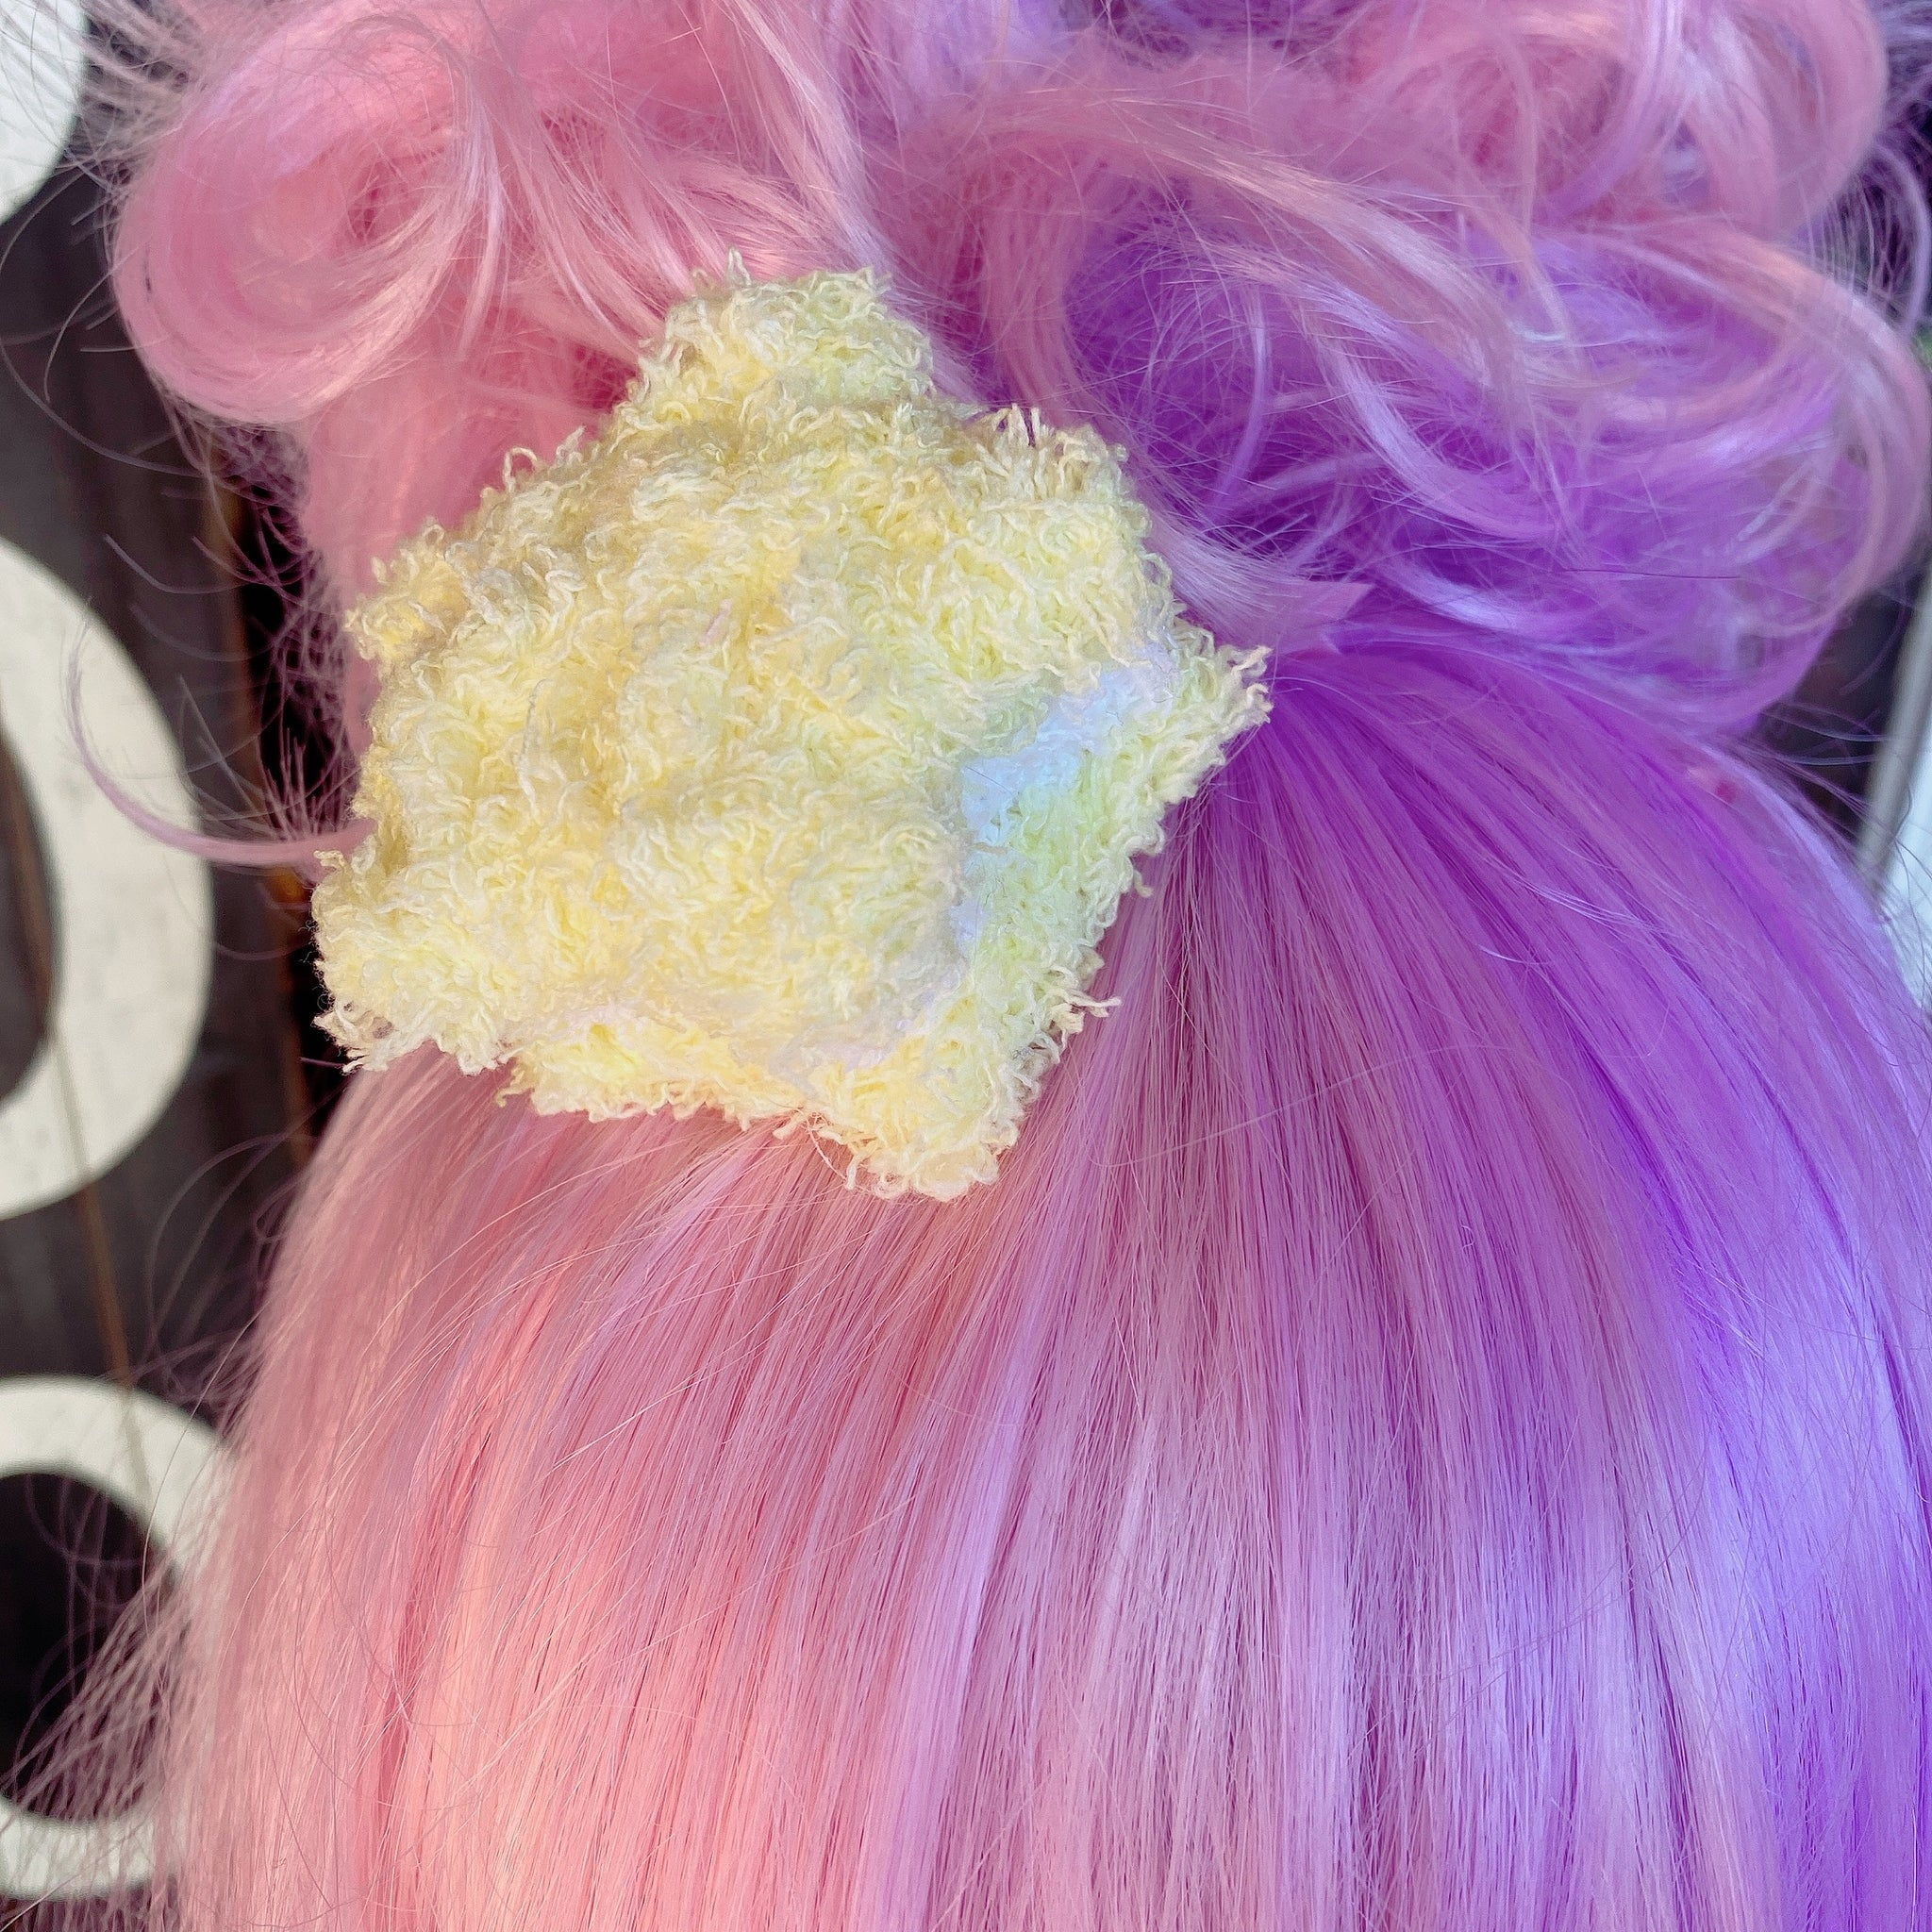 Little Twin Stars Fuzzy Star Macaron Hair Clips Pick One Fairy Kei Sweet Lolita Fashion Kawaii Fuzzy Star Kiki Lala LTS